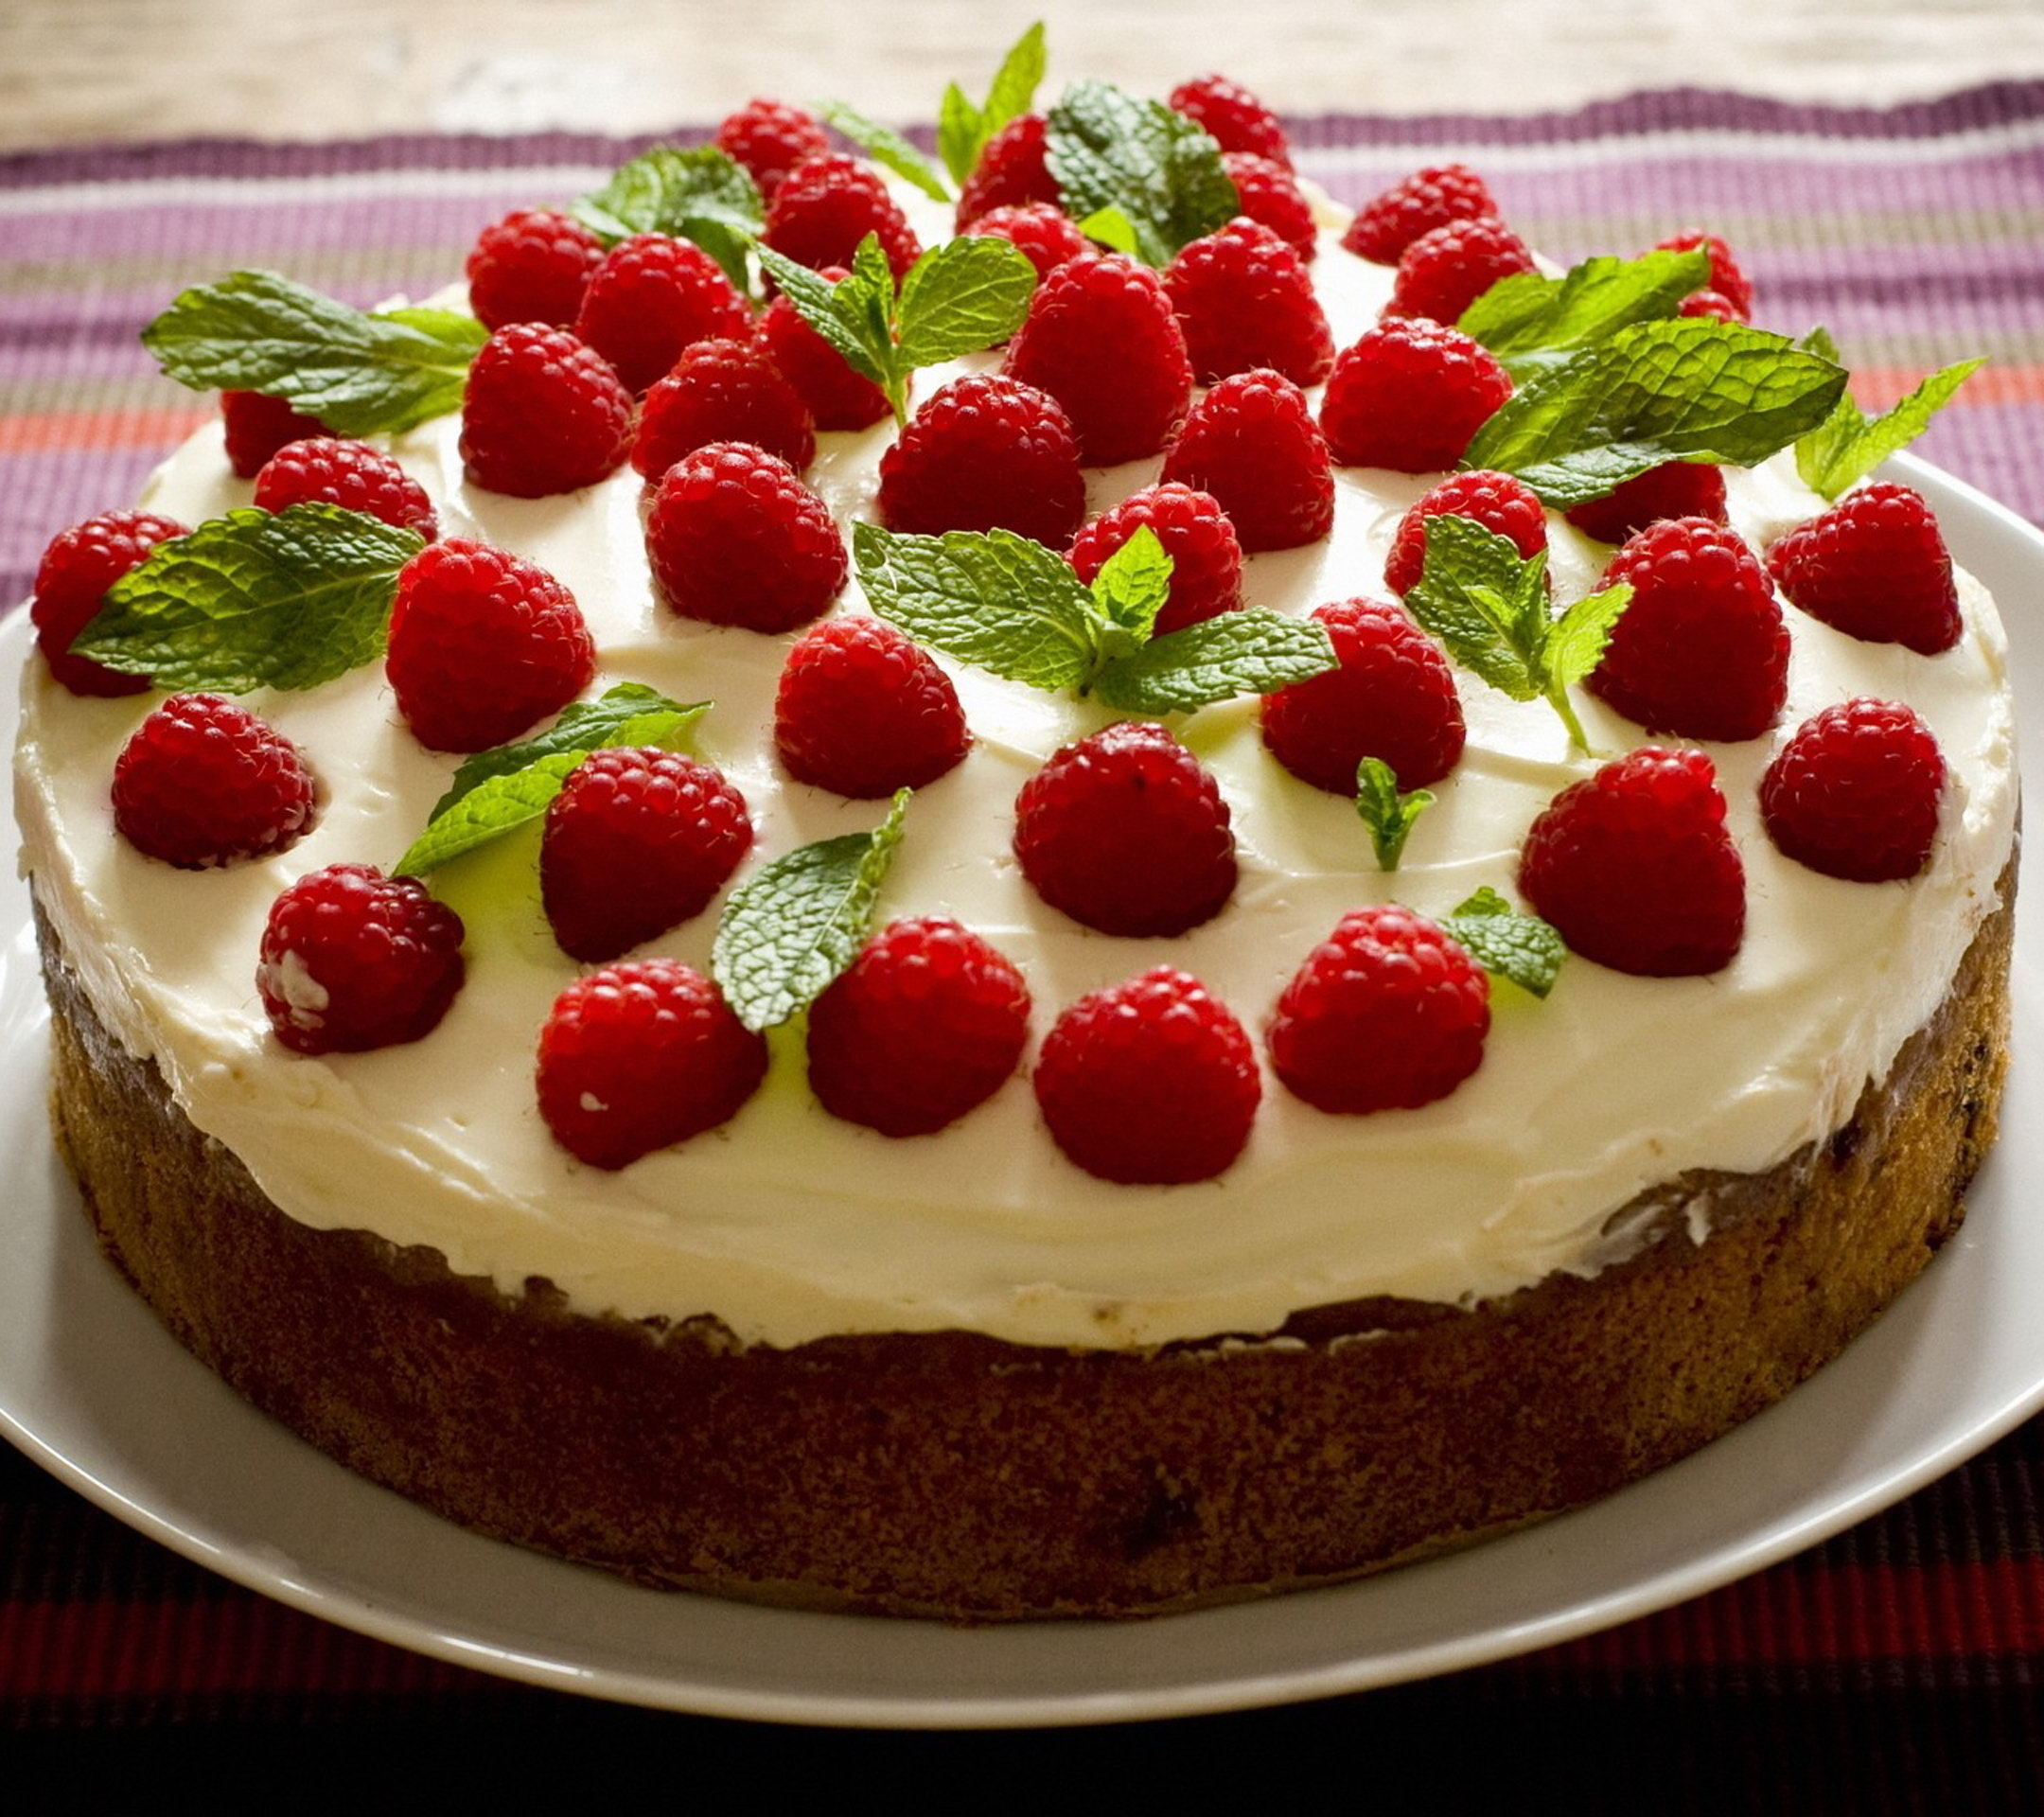 Download Delicious Cakes Wallpapers Gallery